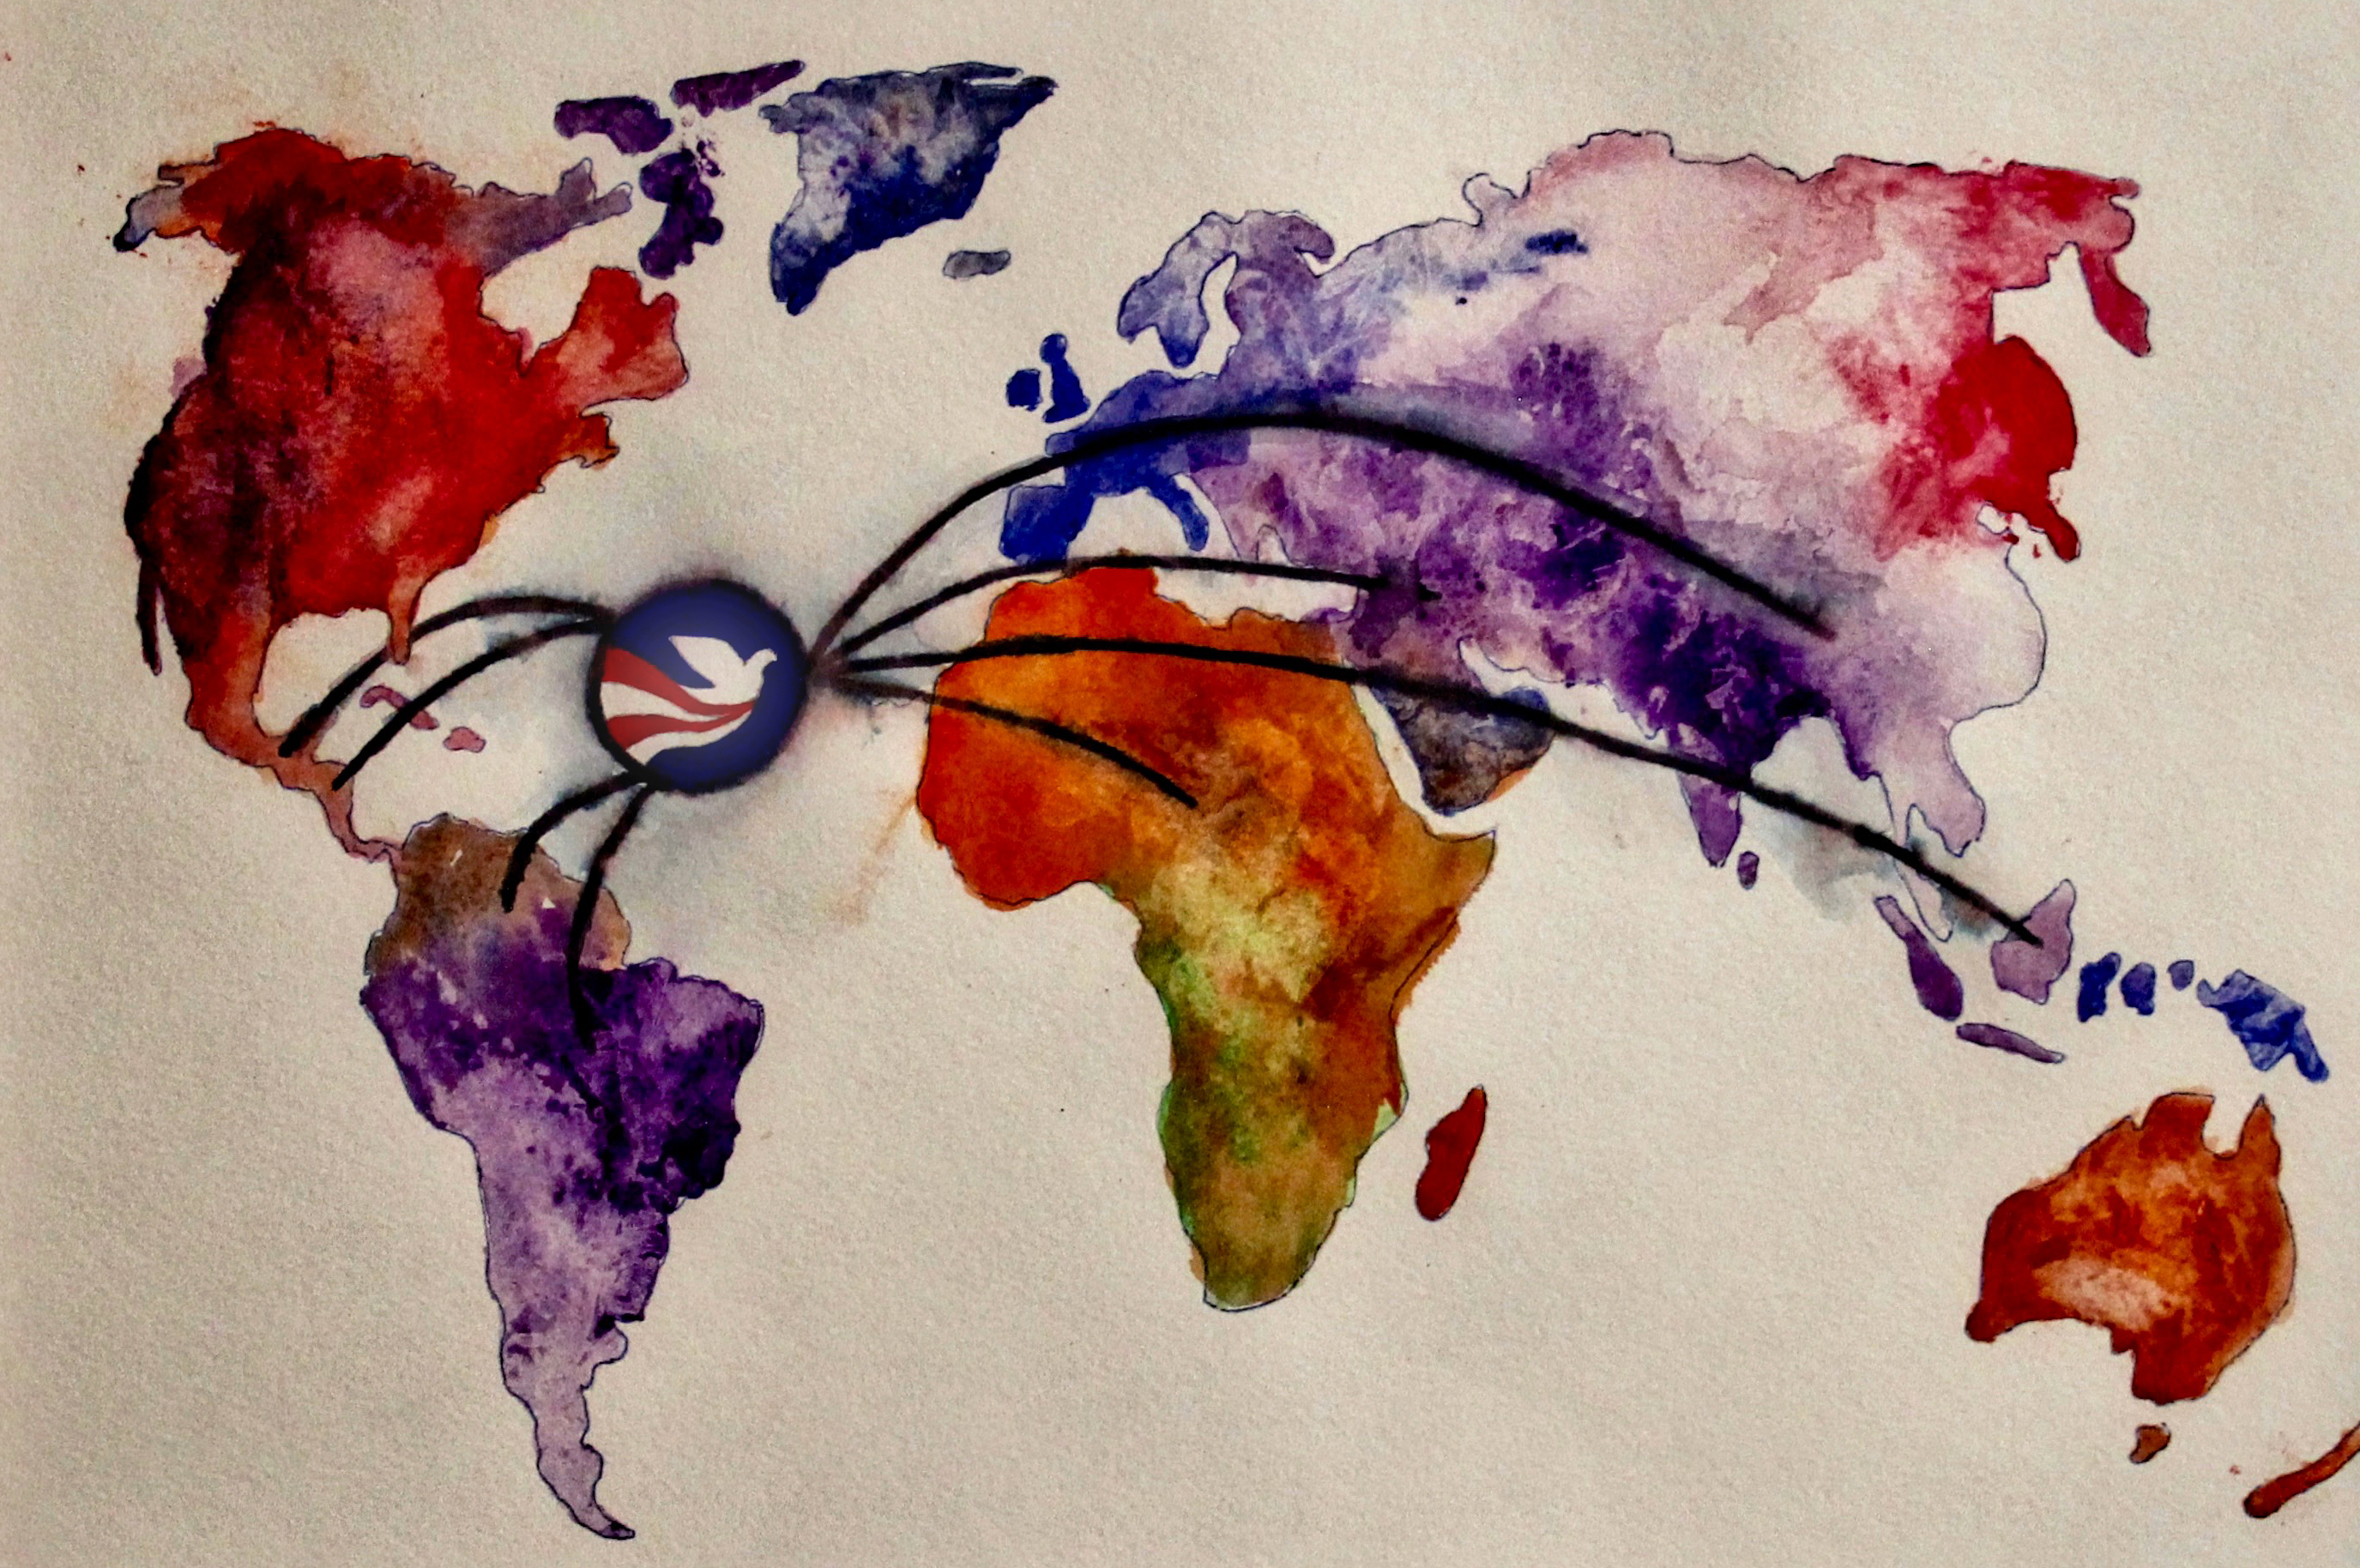 A map of Earth depicted in watercolor